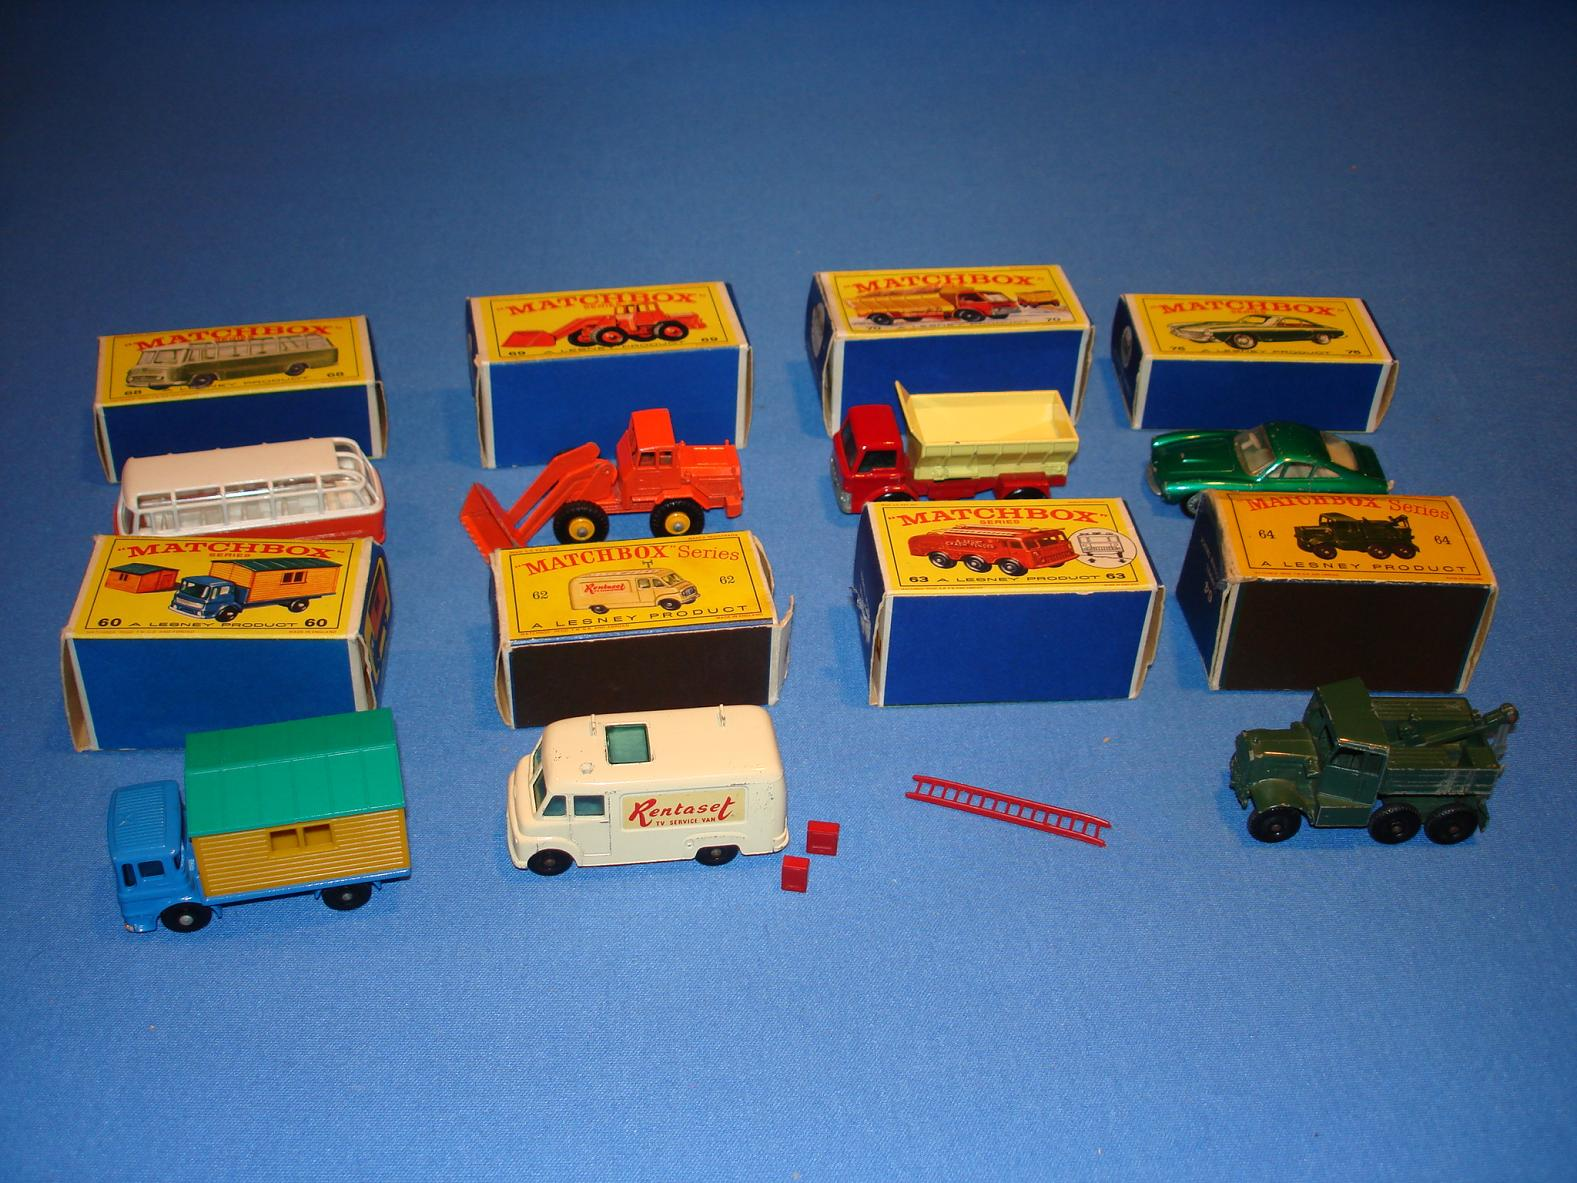 matchbox price guide | eBay - Electronics, Cars, Fashion